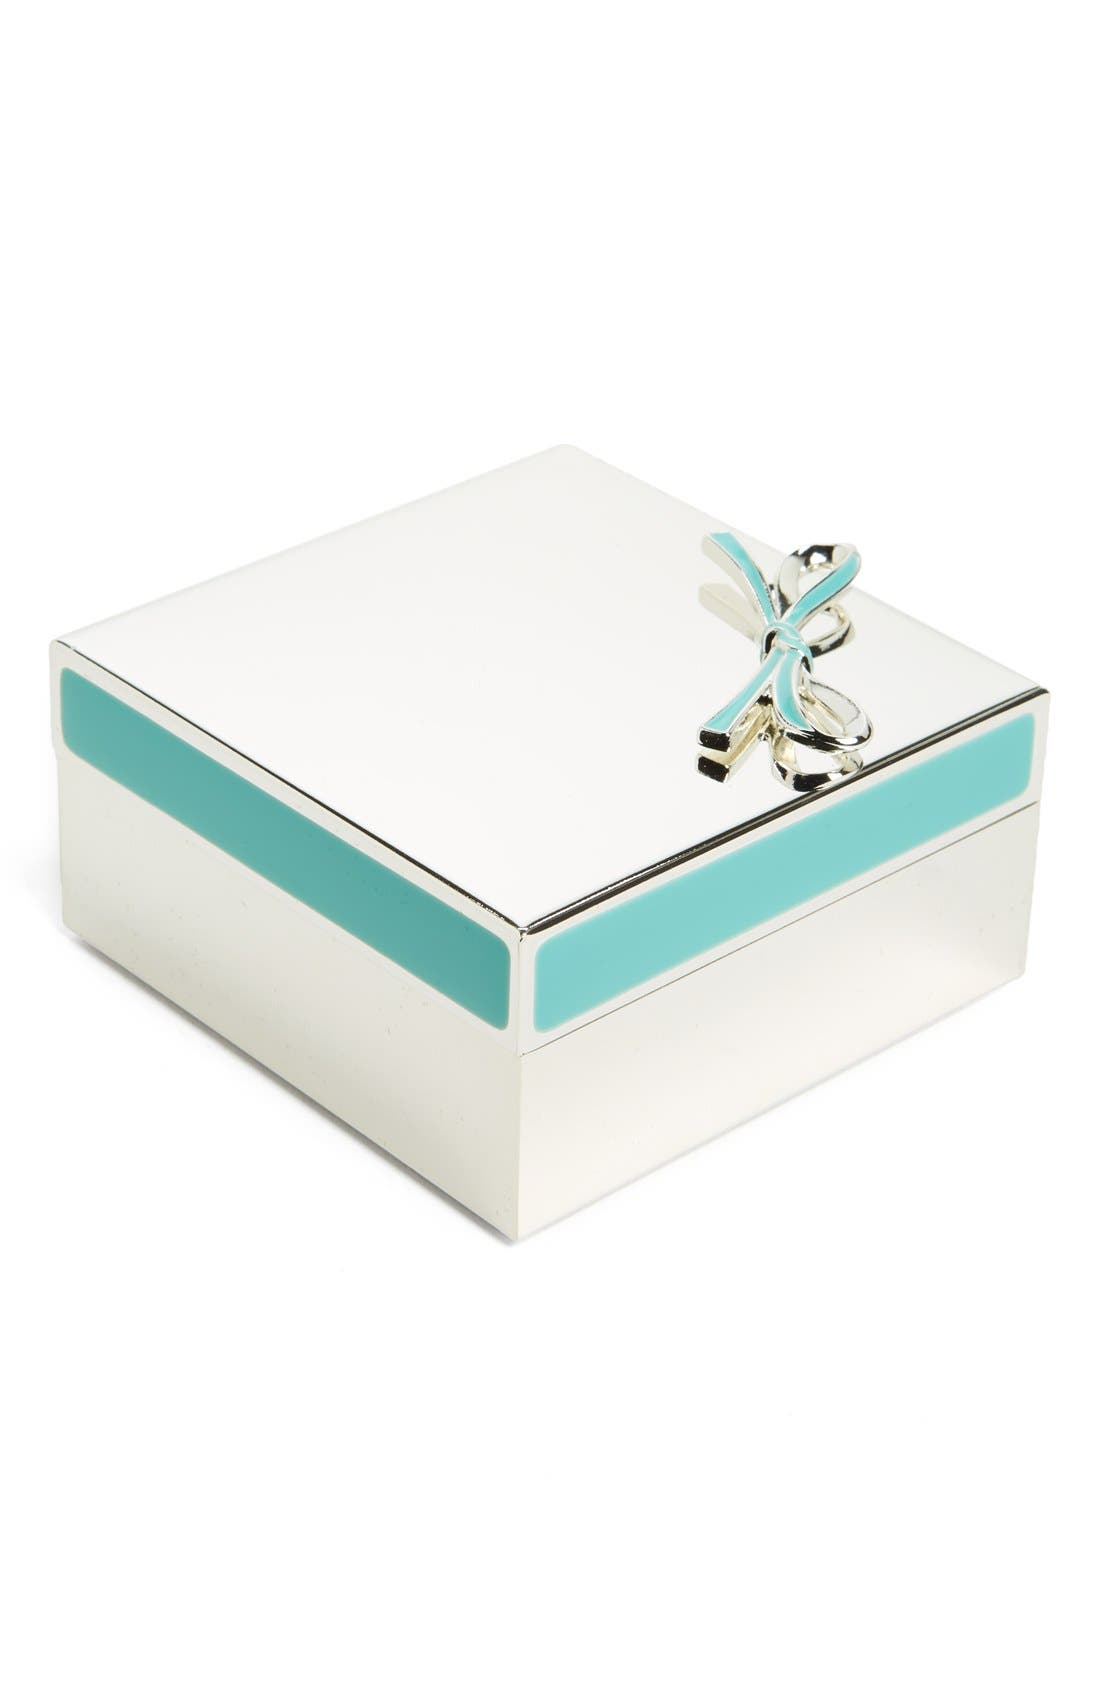 'vienna lane' keepsake box,                         Main,                         color, Turquoise